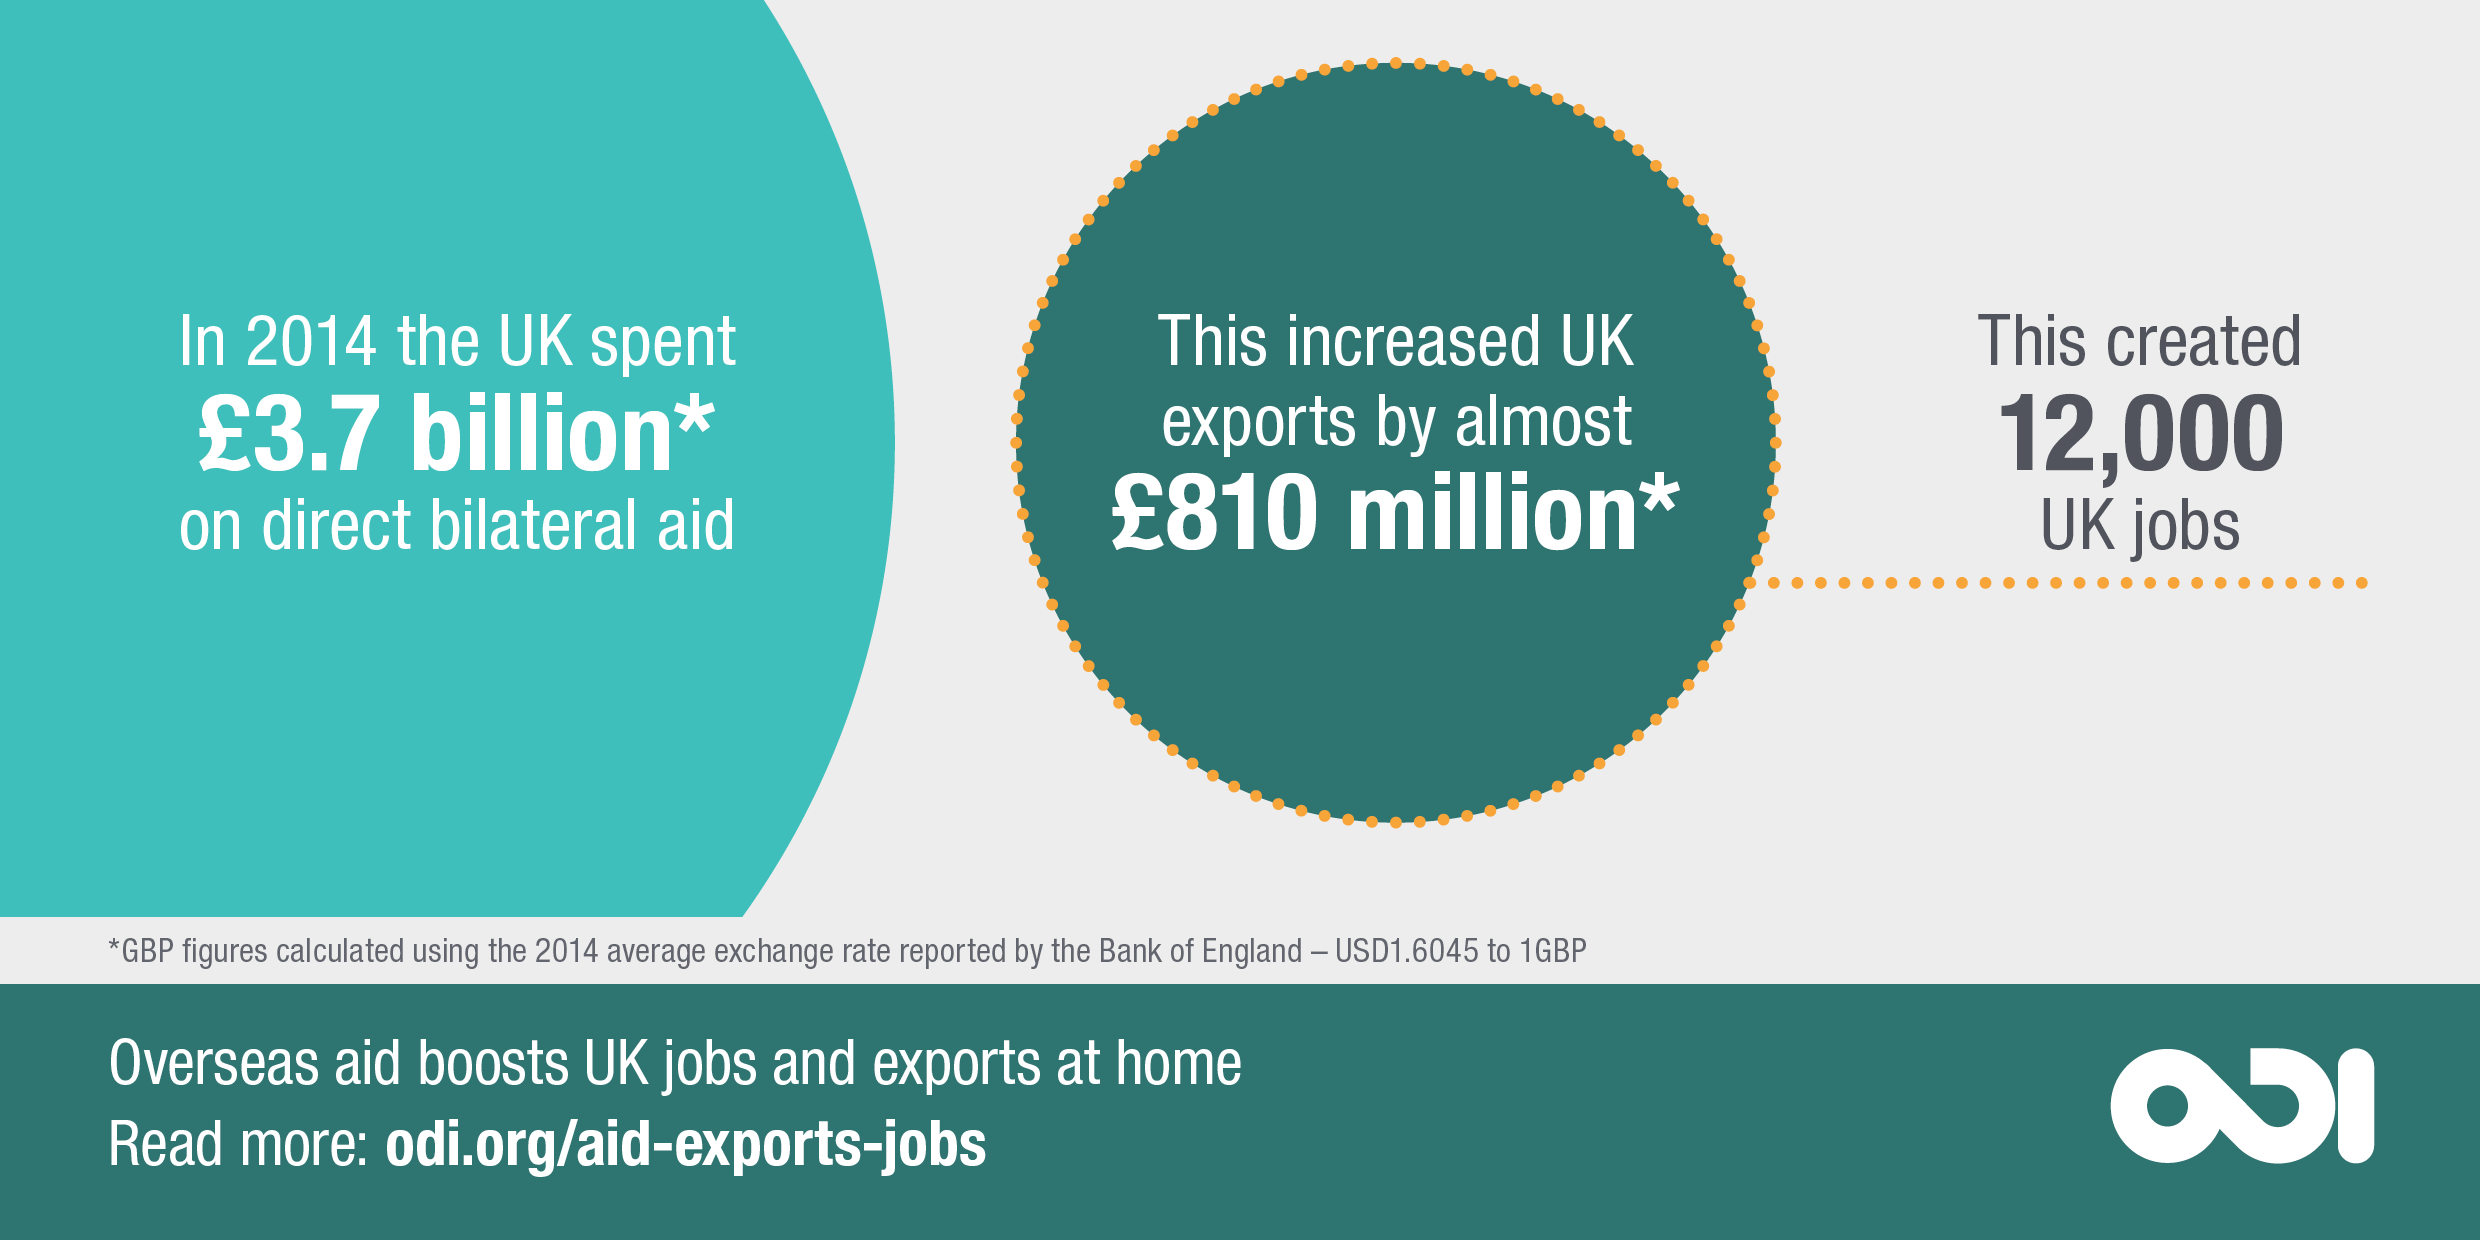 ODI graphic: Overseas aid boosts UK jobs and exports at home